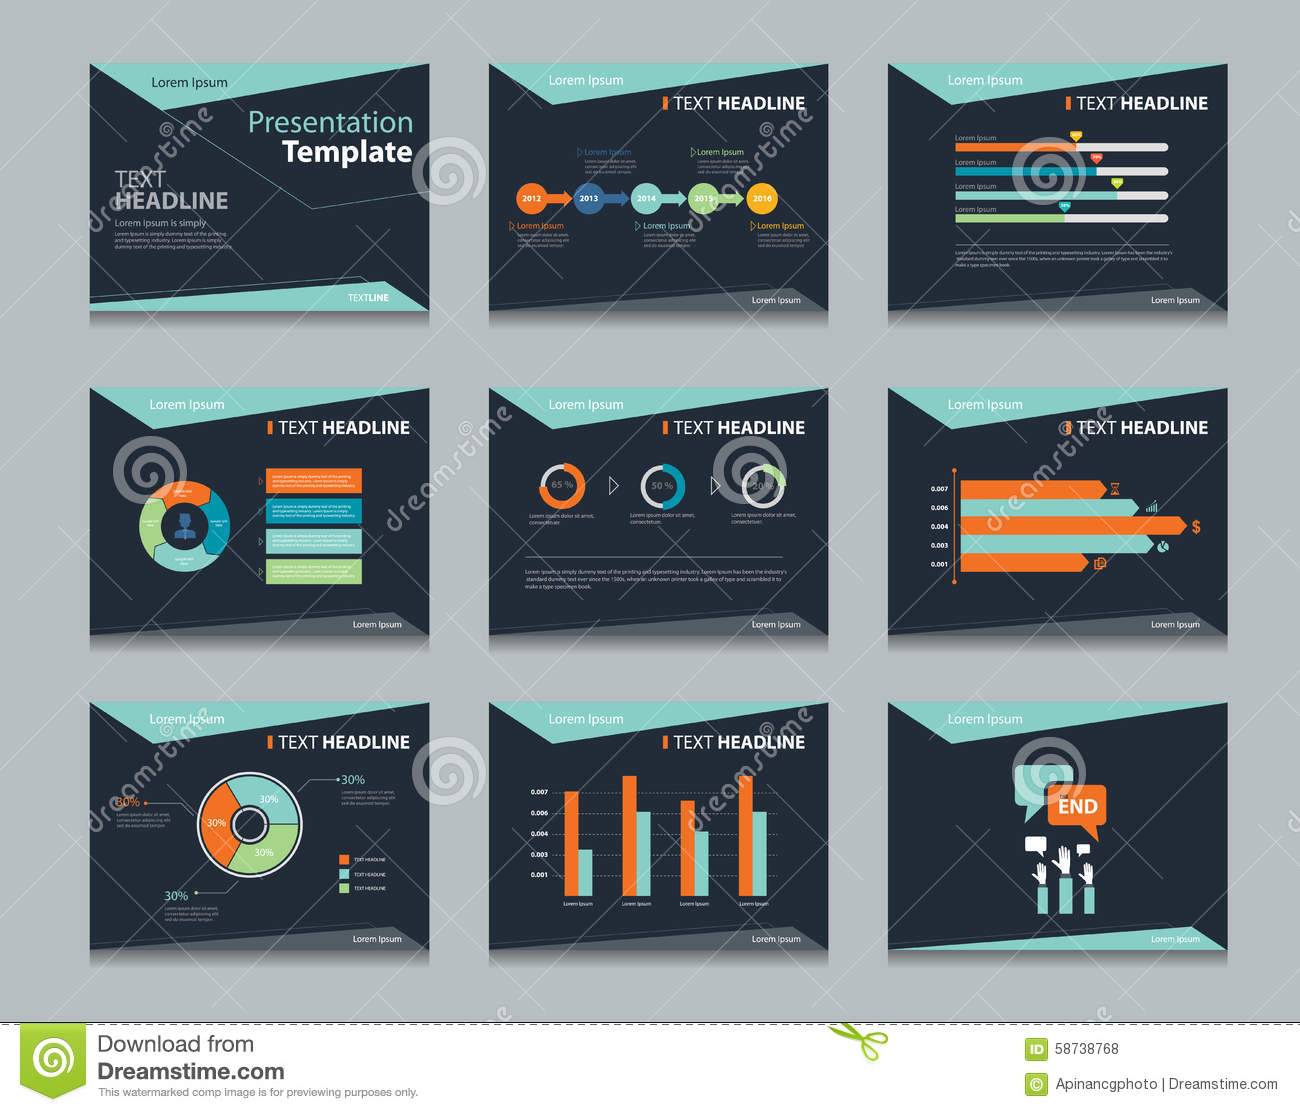 Black infographic powerpoint template design backgrounds business black infographic powerpoint template design backgrounds business presentation template set toneelgroepblik Choice Image